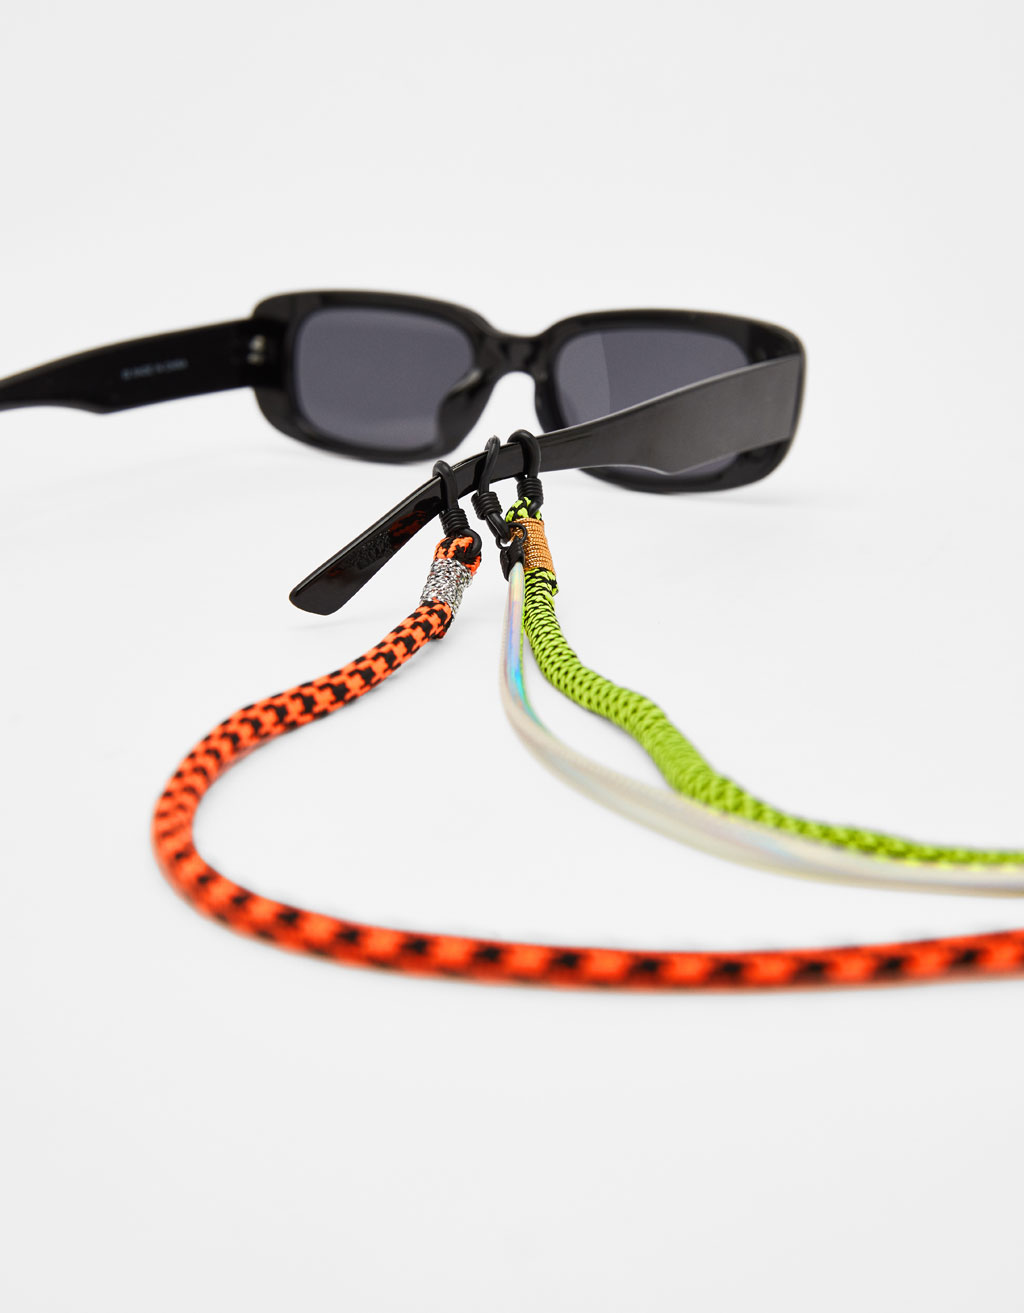 Pack of sunglasses cords